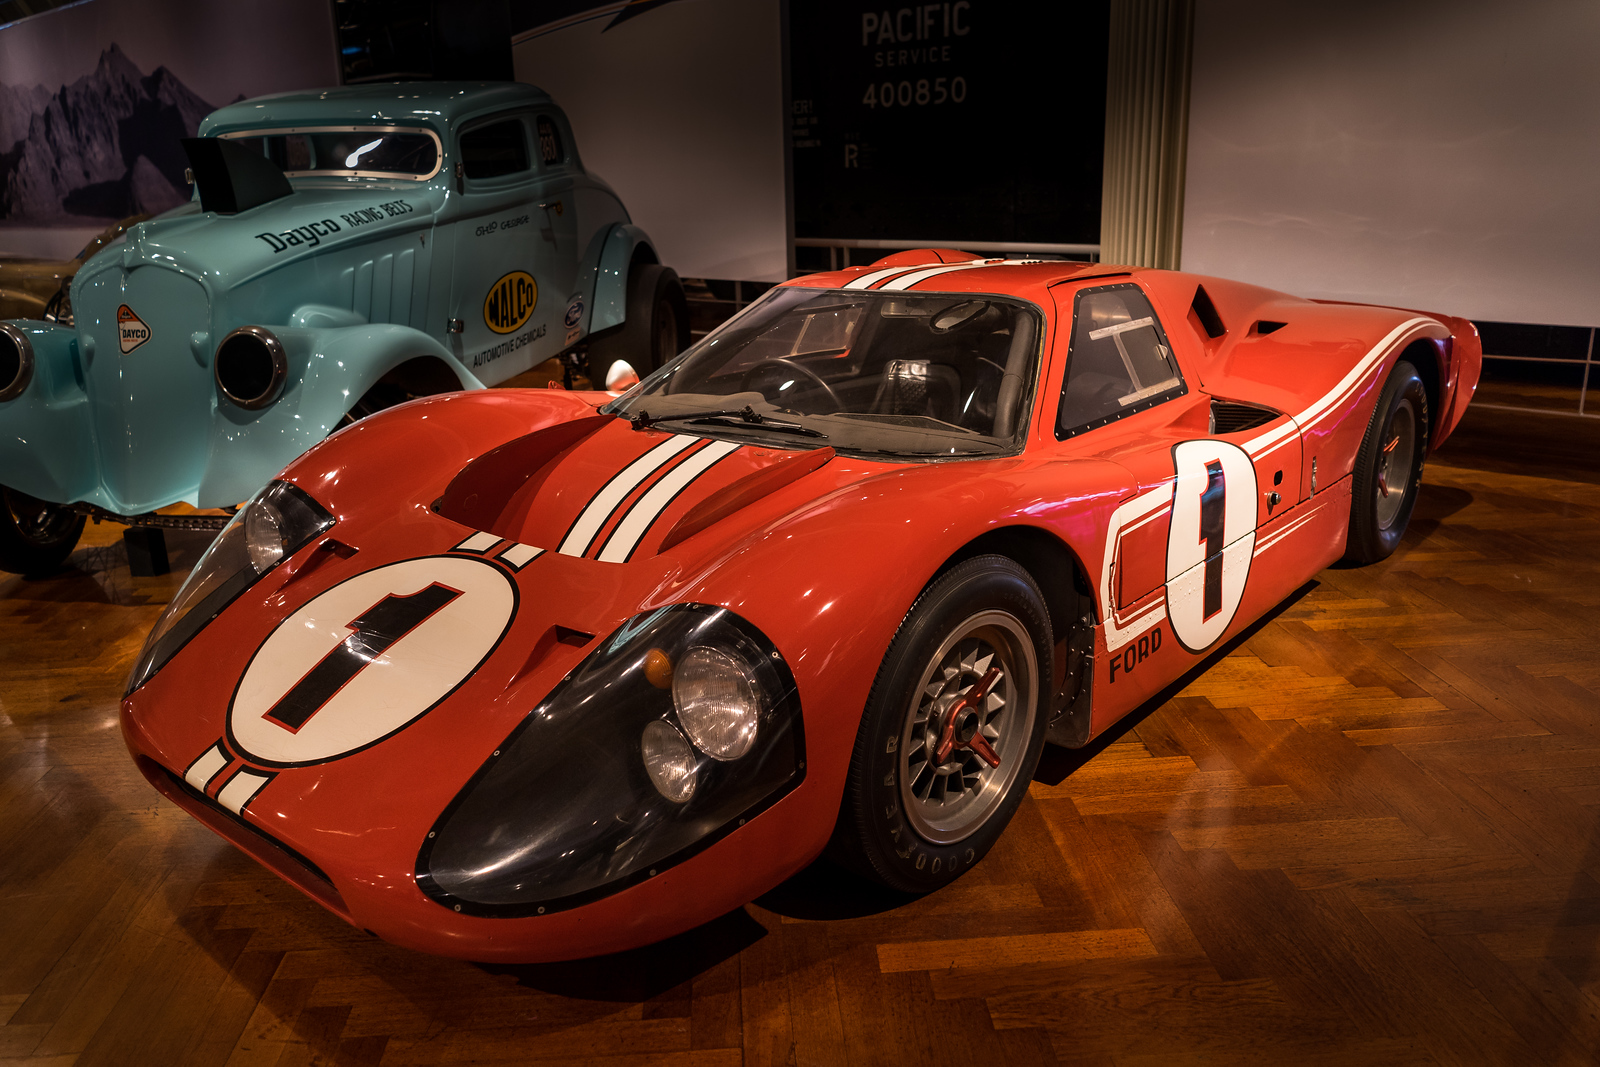 1967 Ford Mark IV Race Car at The Henry Ford Museum